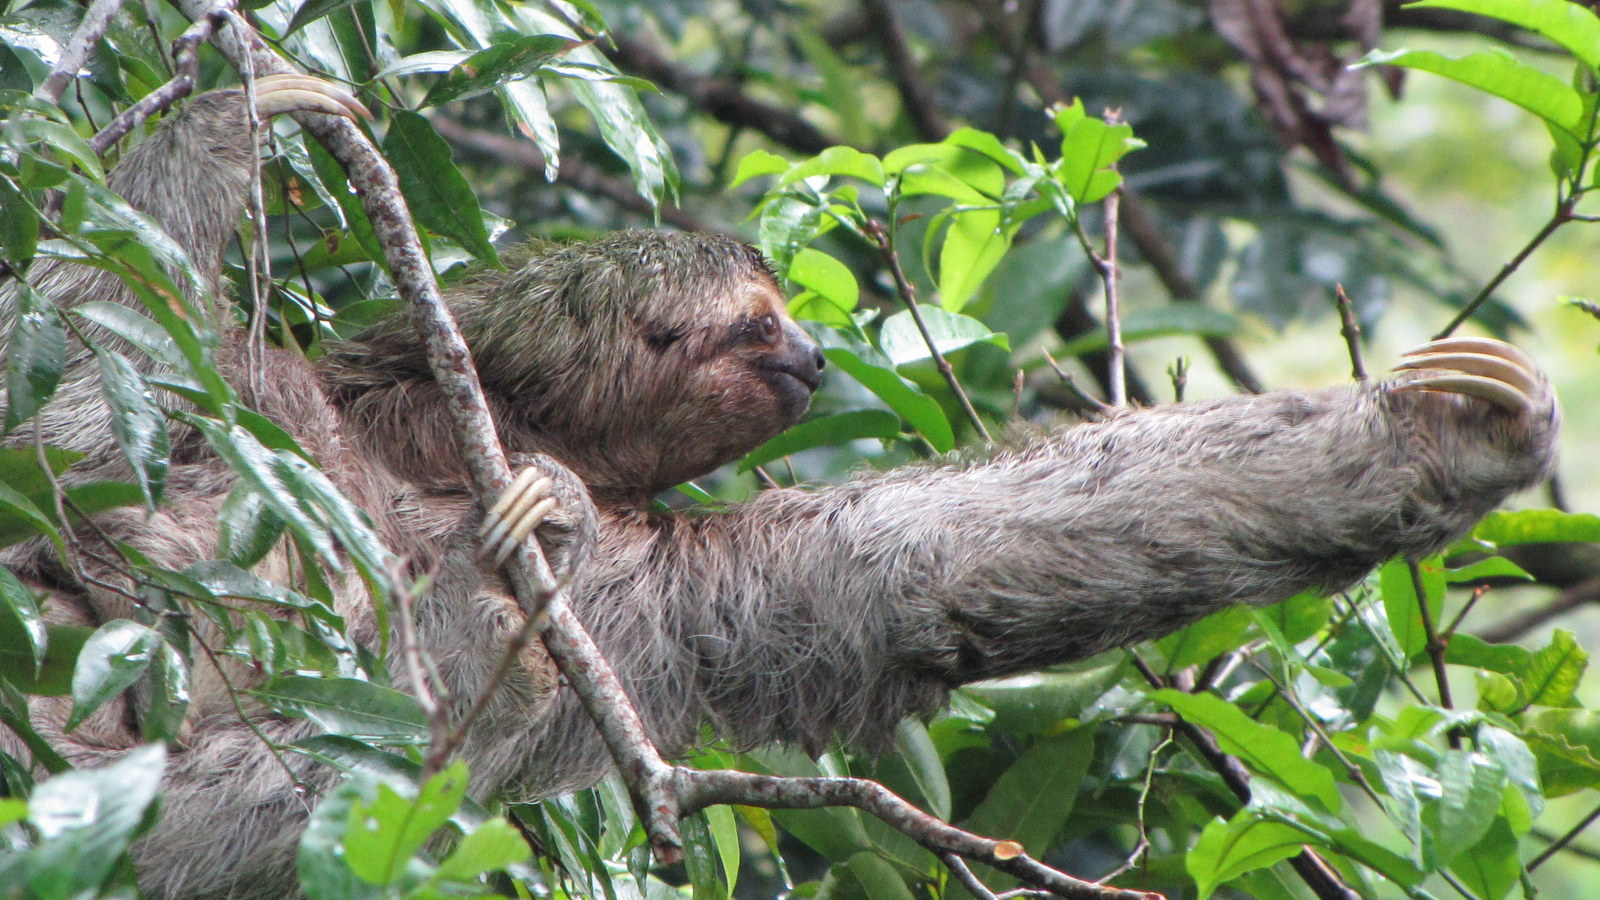 Sloth going to the bathroom - Sloth Reaching For A Snack